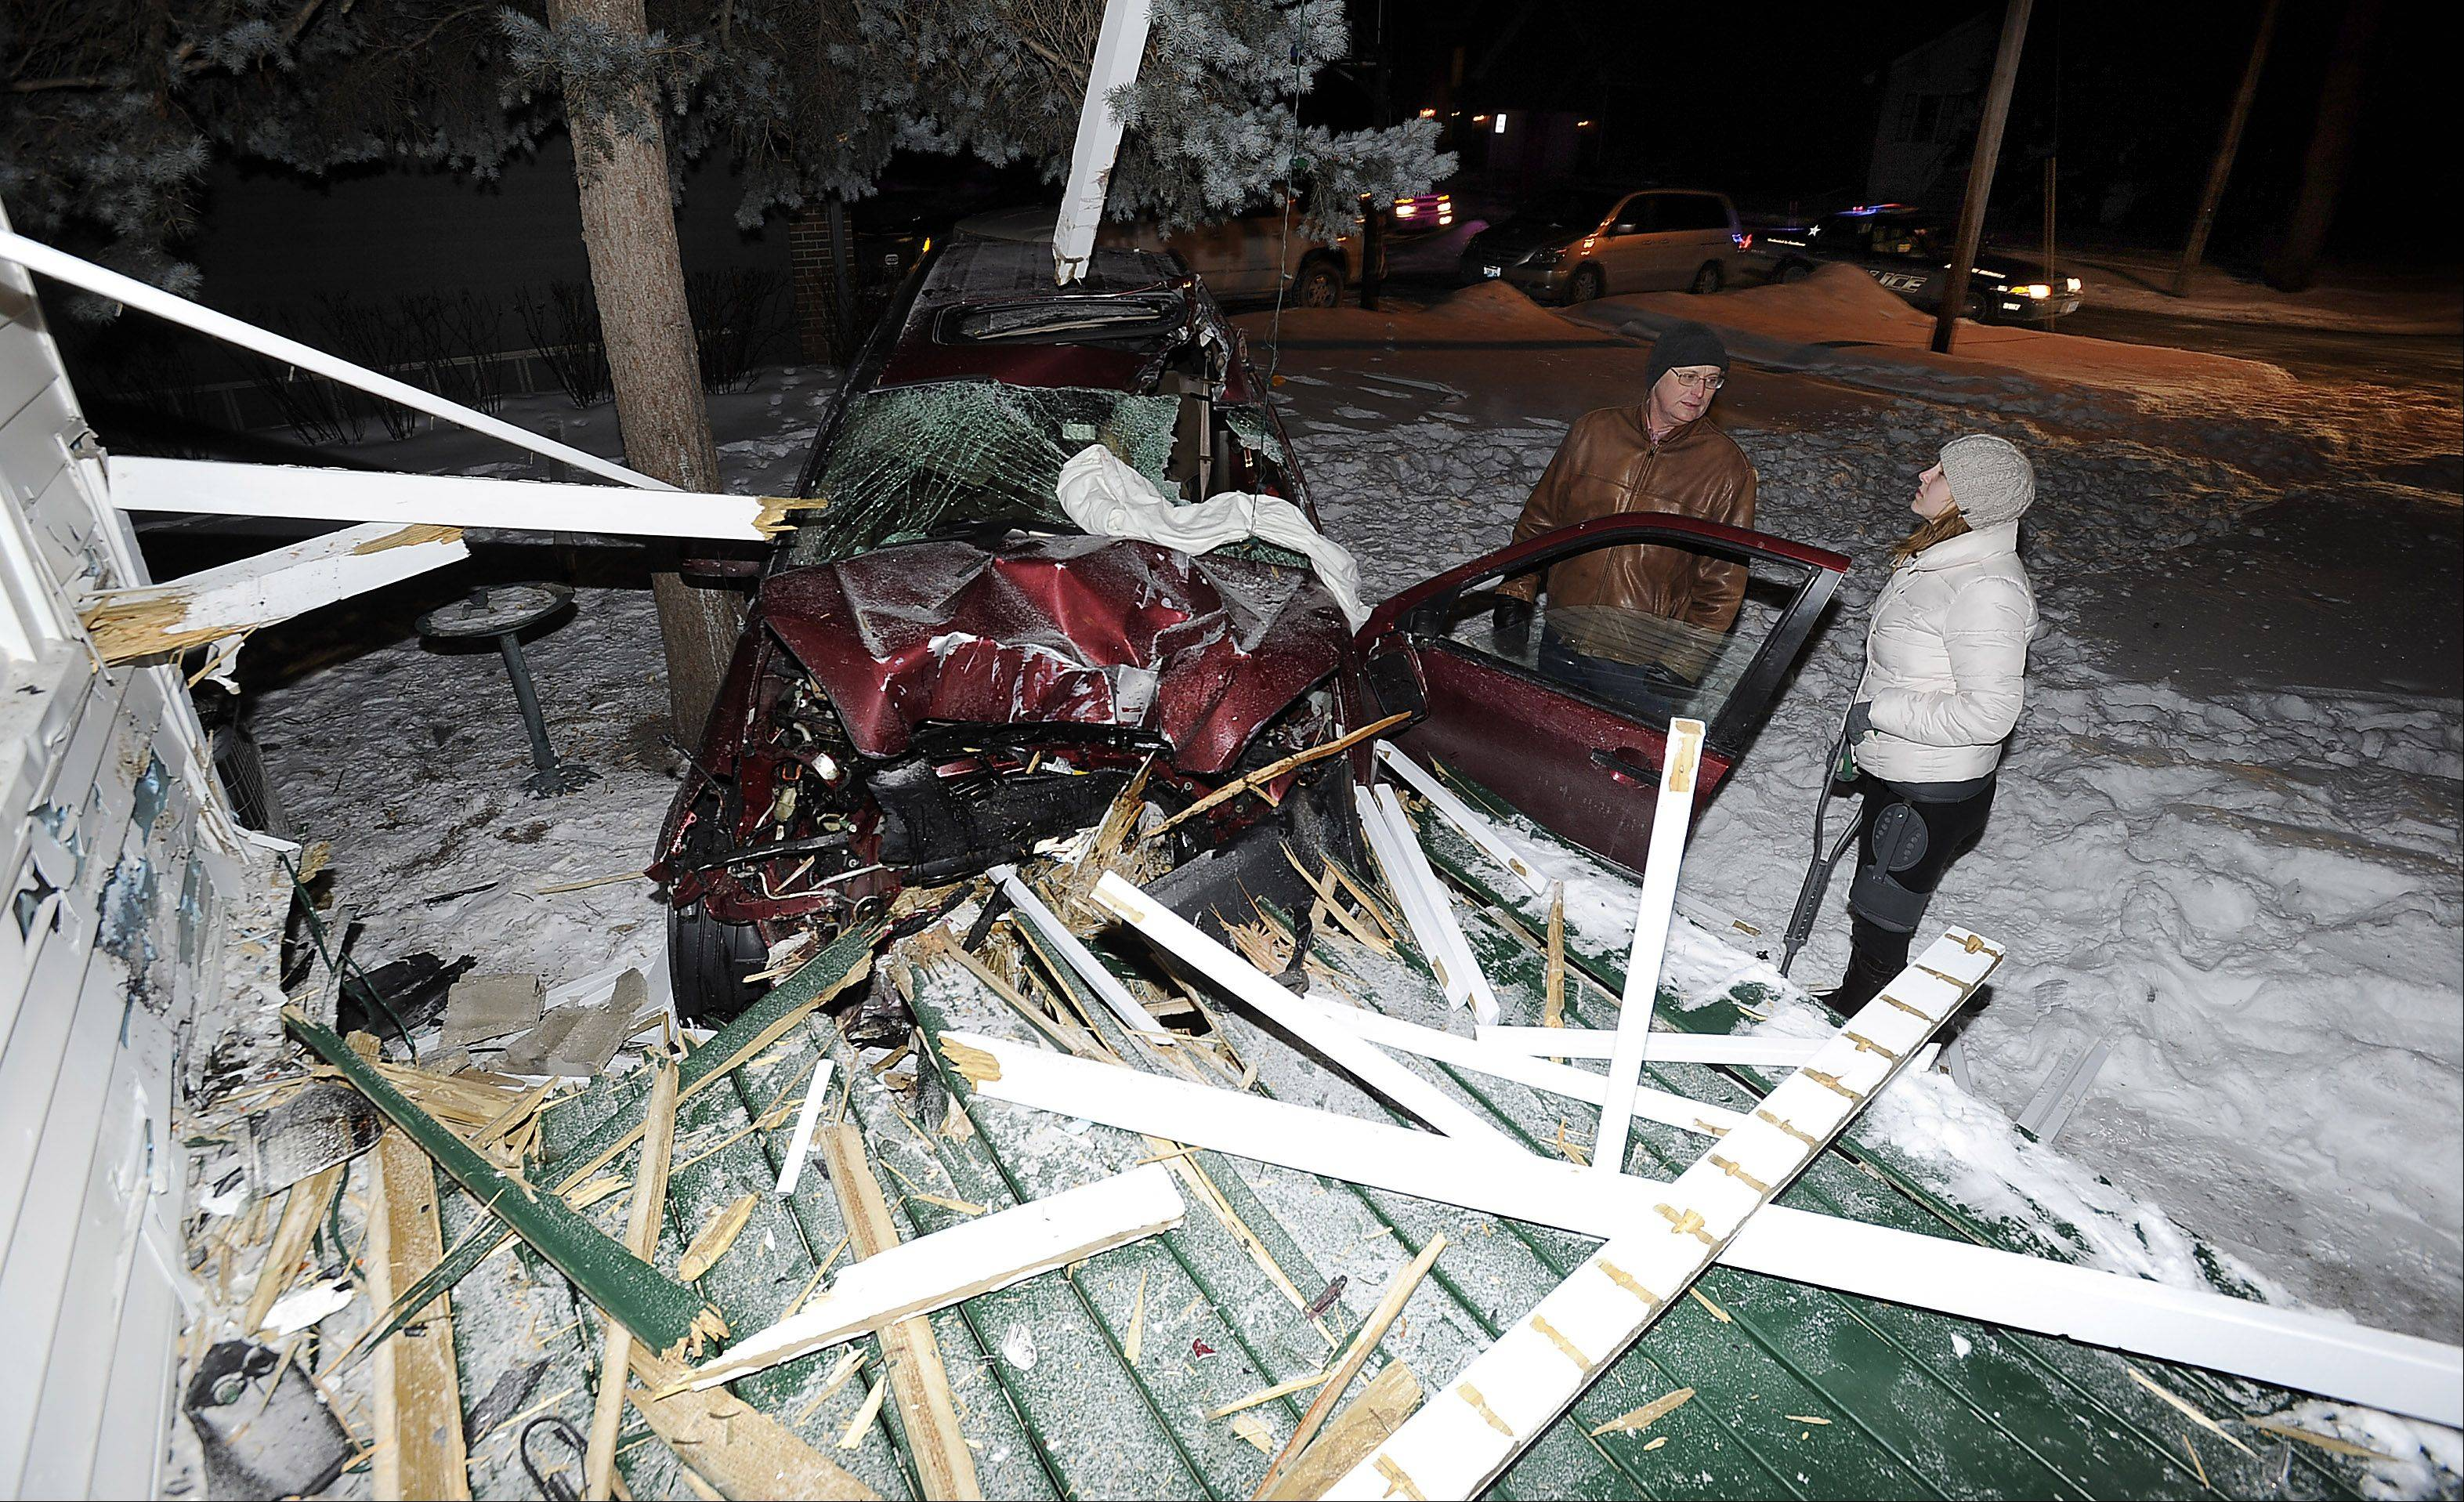 Homeowner Thomas Sarikas and his daughter Chelsea look over the damage caused when an SUV slammed into their house Thursday night in Arlington Heights. The driver was injured and had to be cut from the vehicle.